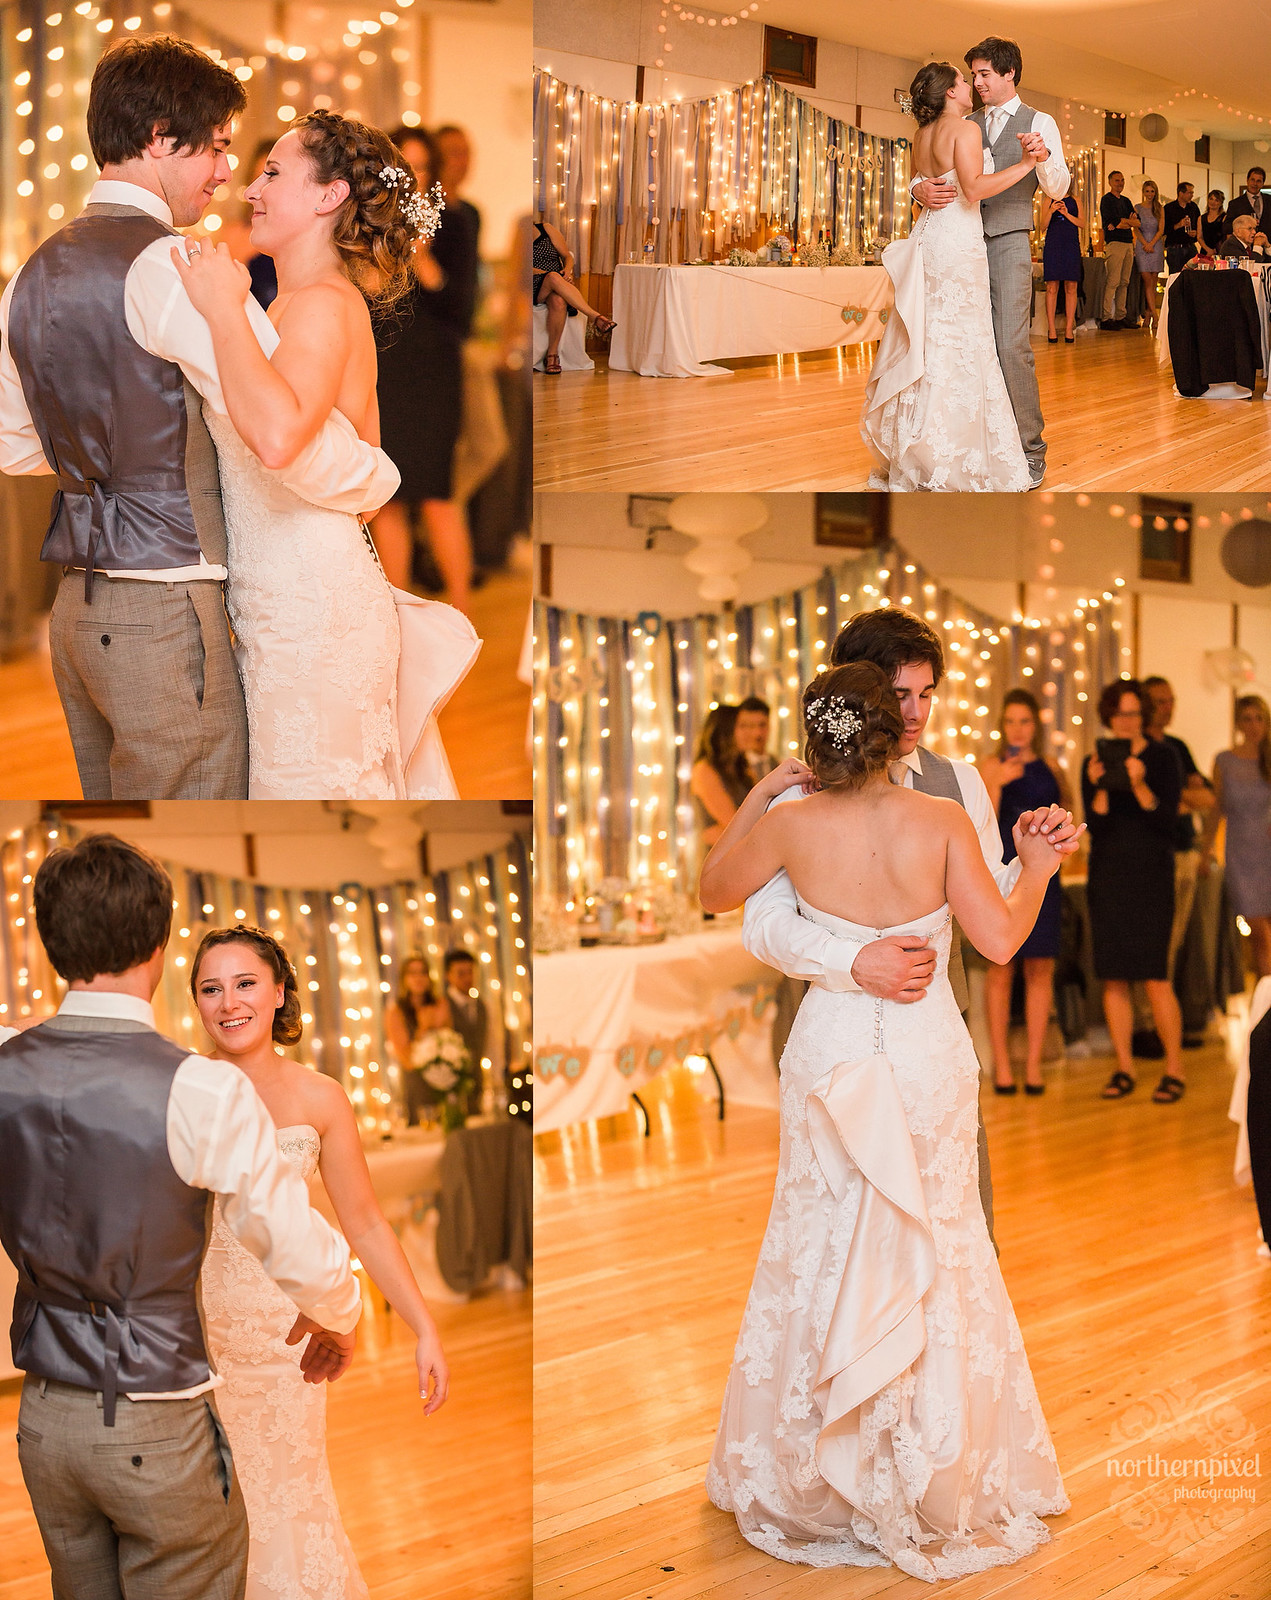 The First Dance - Tete Jaune BC Wedding